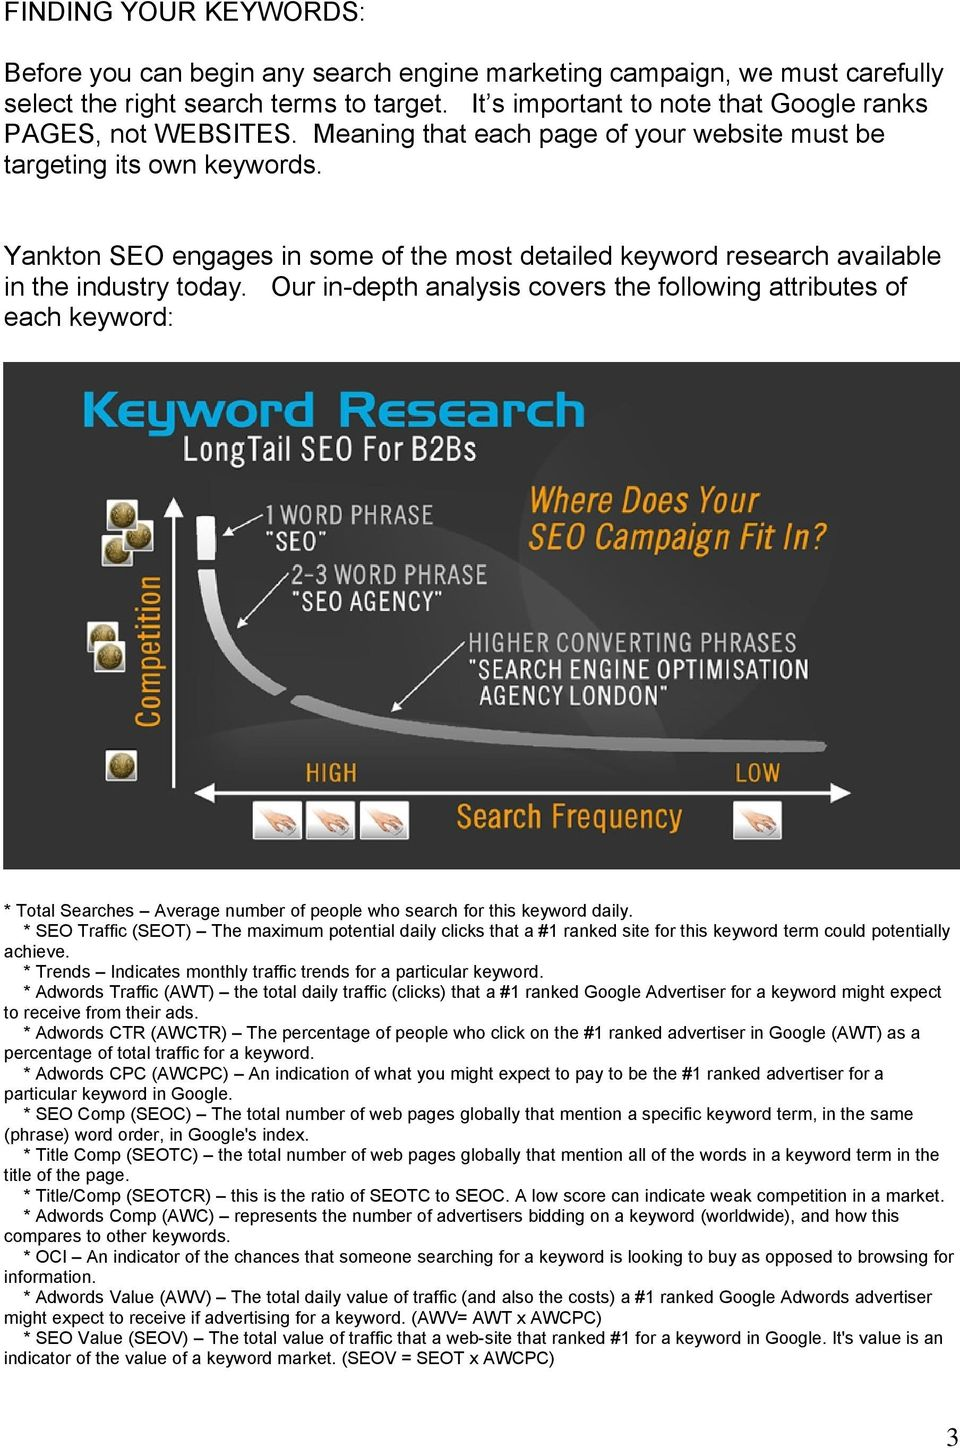 Yankton SEO engages in some of the most detailed keyword research available in the industry today.